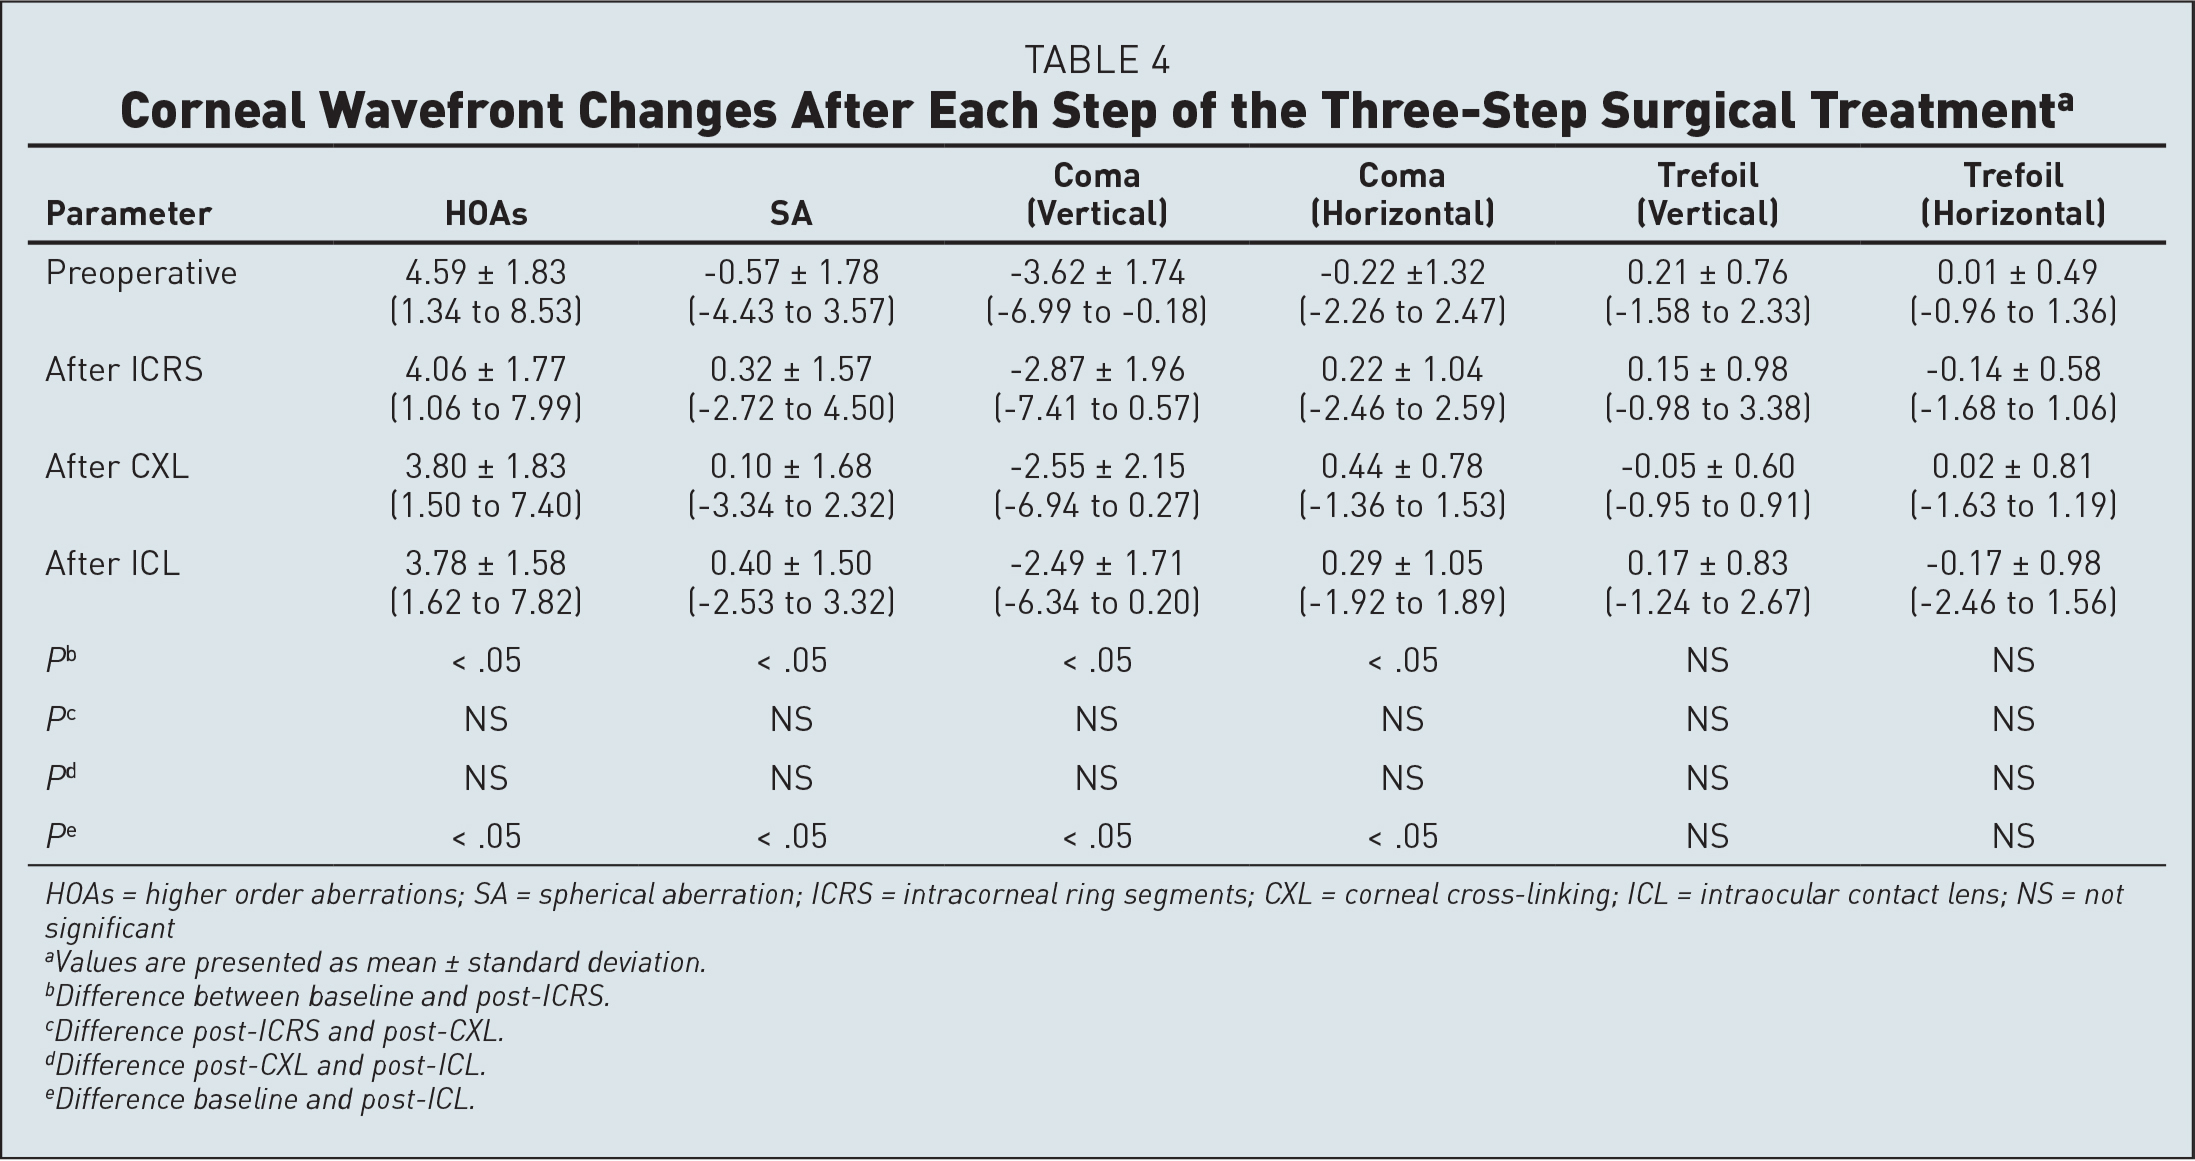 Corneal Wavefront Changes After Each Step of the Three-Step Surgical Treatmenta